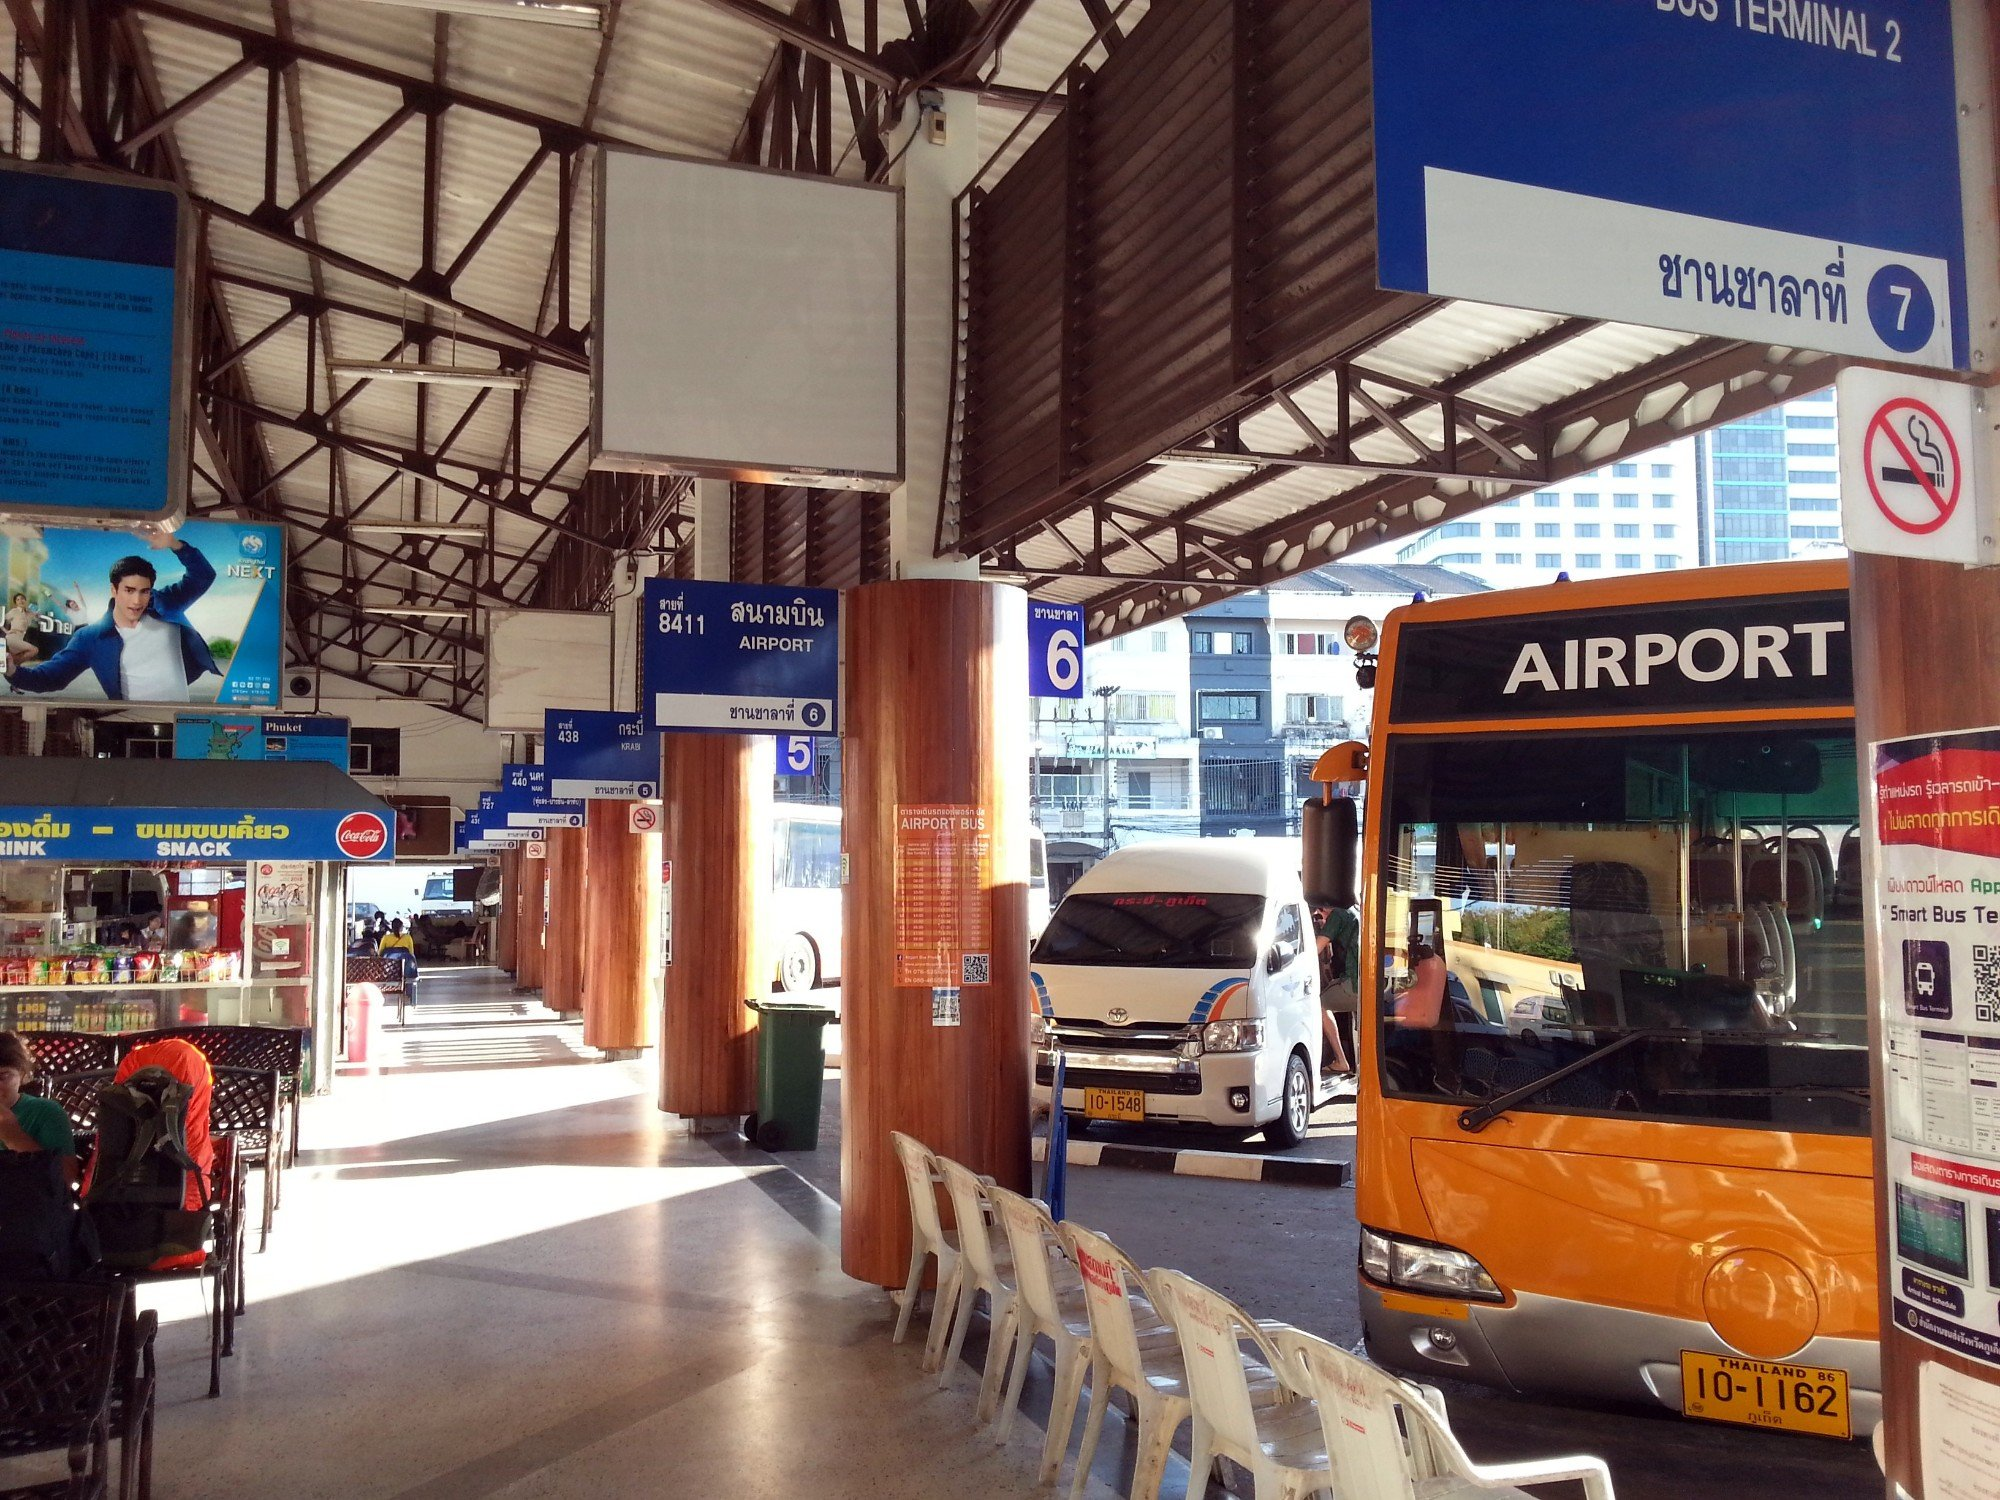 Phuket Airport Bus at Phuket Bus Terminal 1